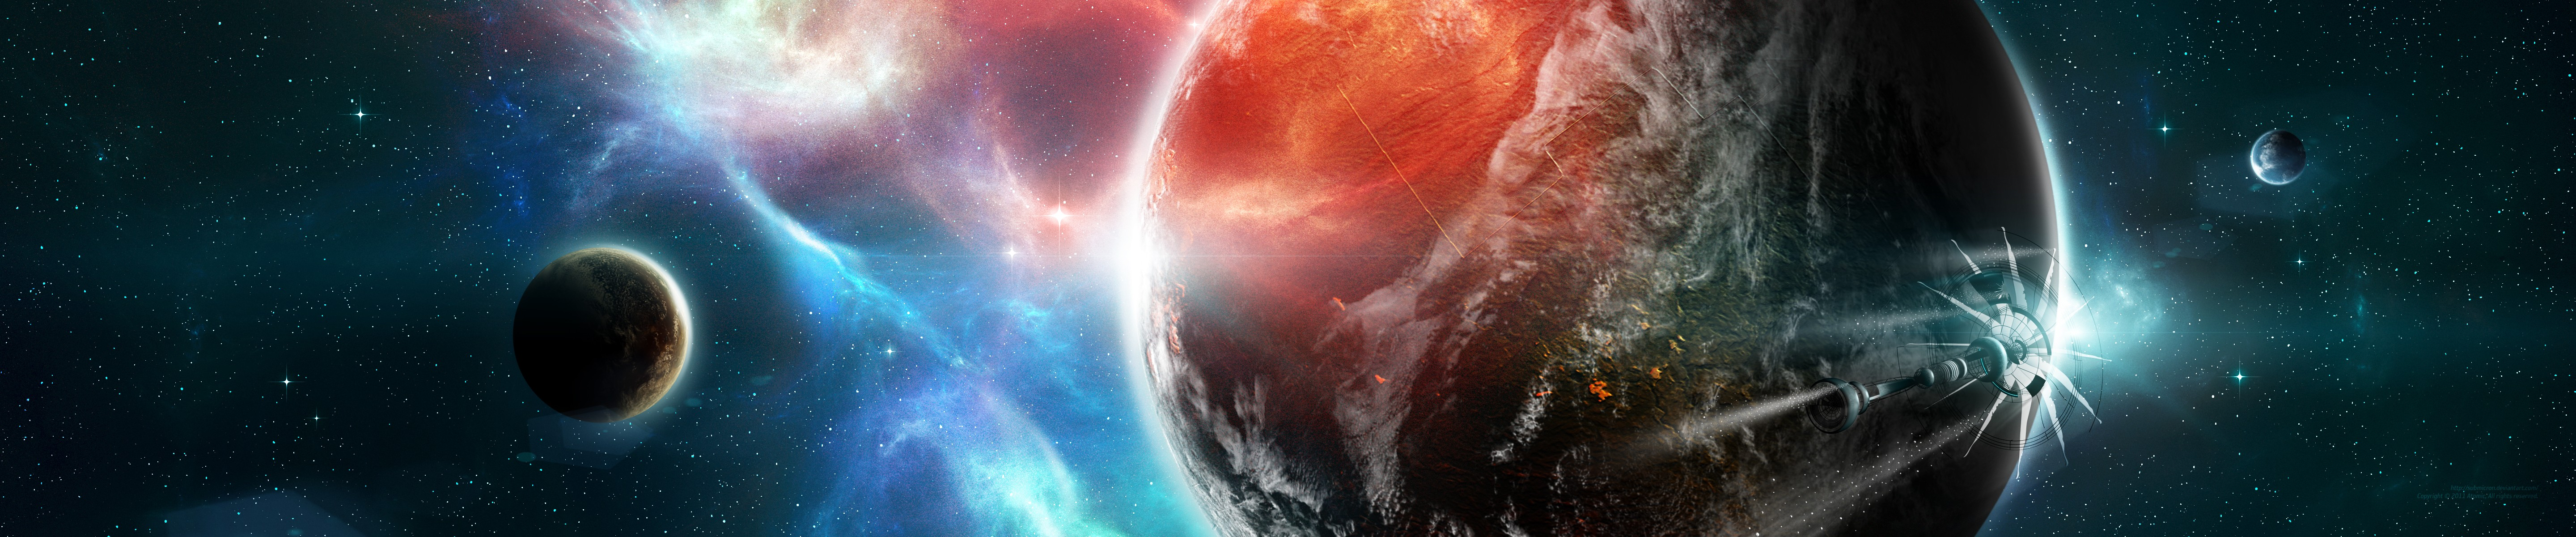 Outer space stars planets dual screen deviantart spaceships artwork 5760x1200